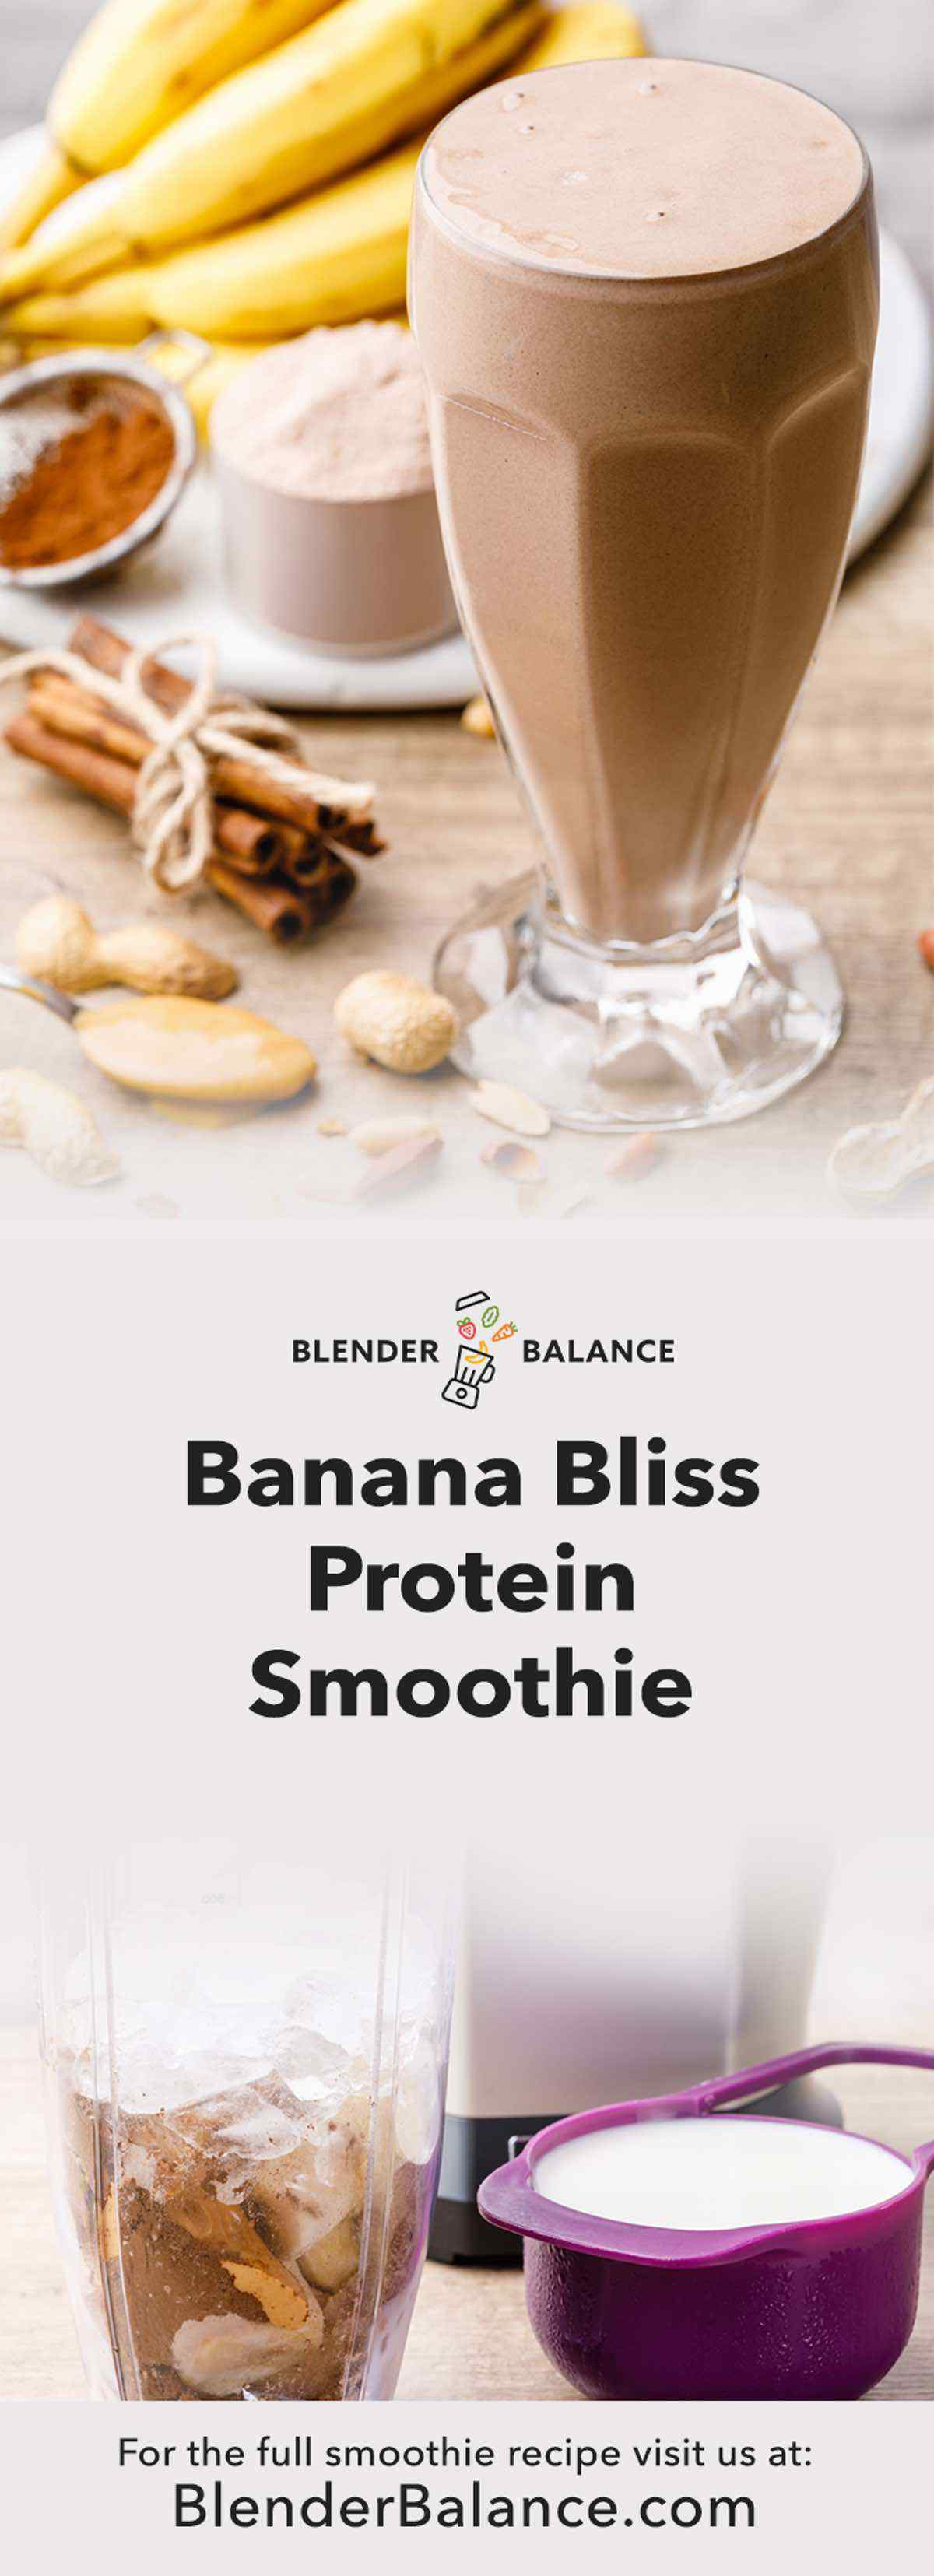 Banana Bliss Protein Smoothie - Protein-Packed Chocolate Shake Recipe - Blender Balance #healthychocolateshakes